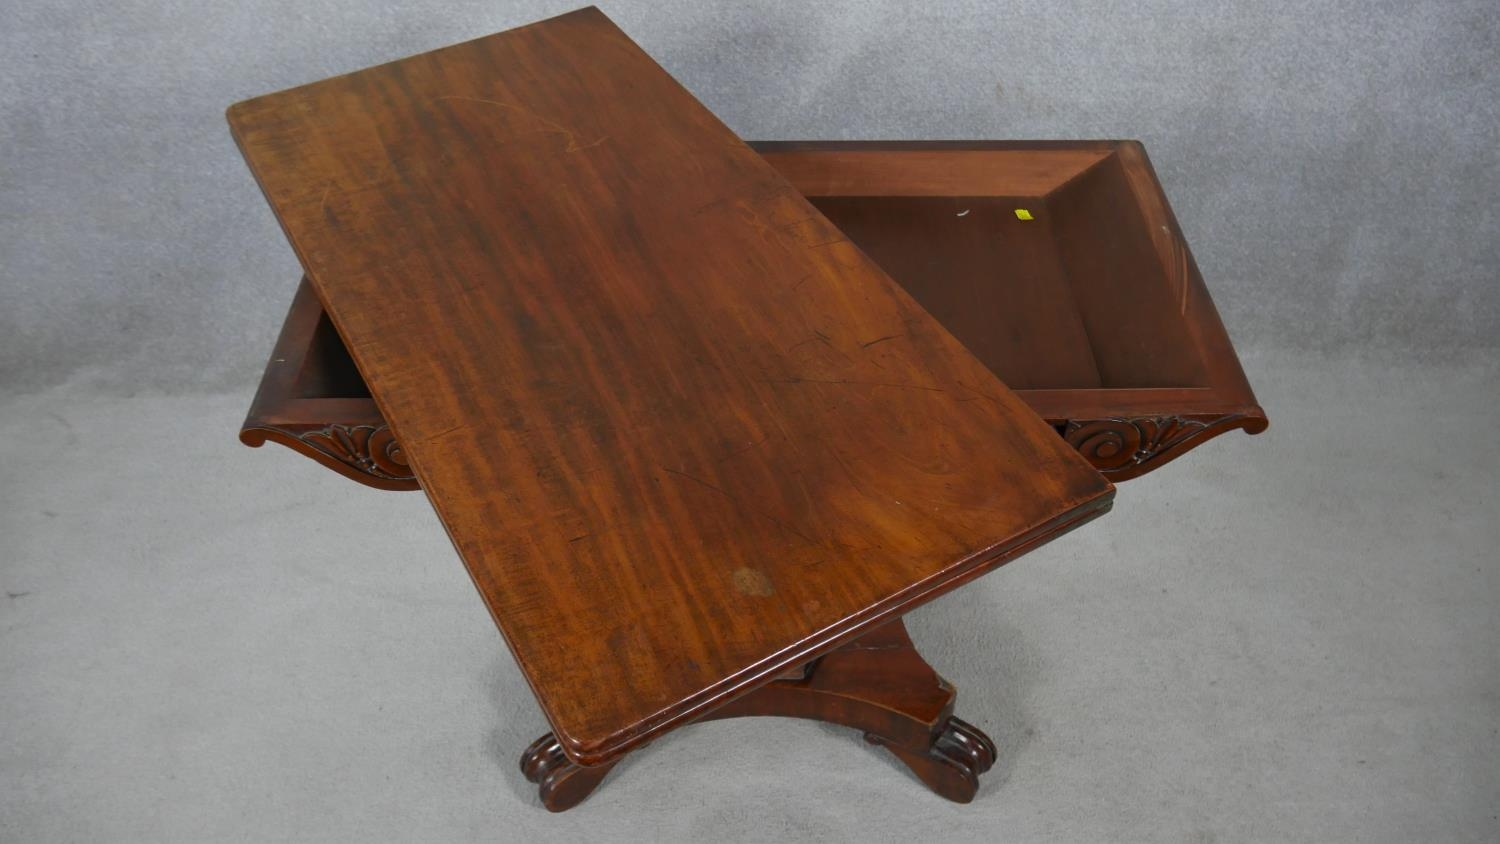 A William IV mahogany fold over top tea table on facetted pedestal quadruped base. H.72 L.48 W.92cm - Image 2 of 7